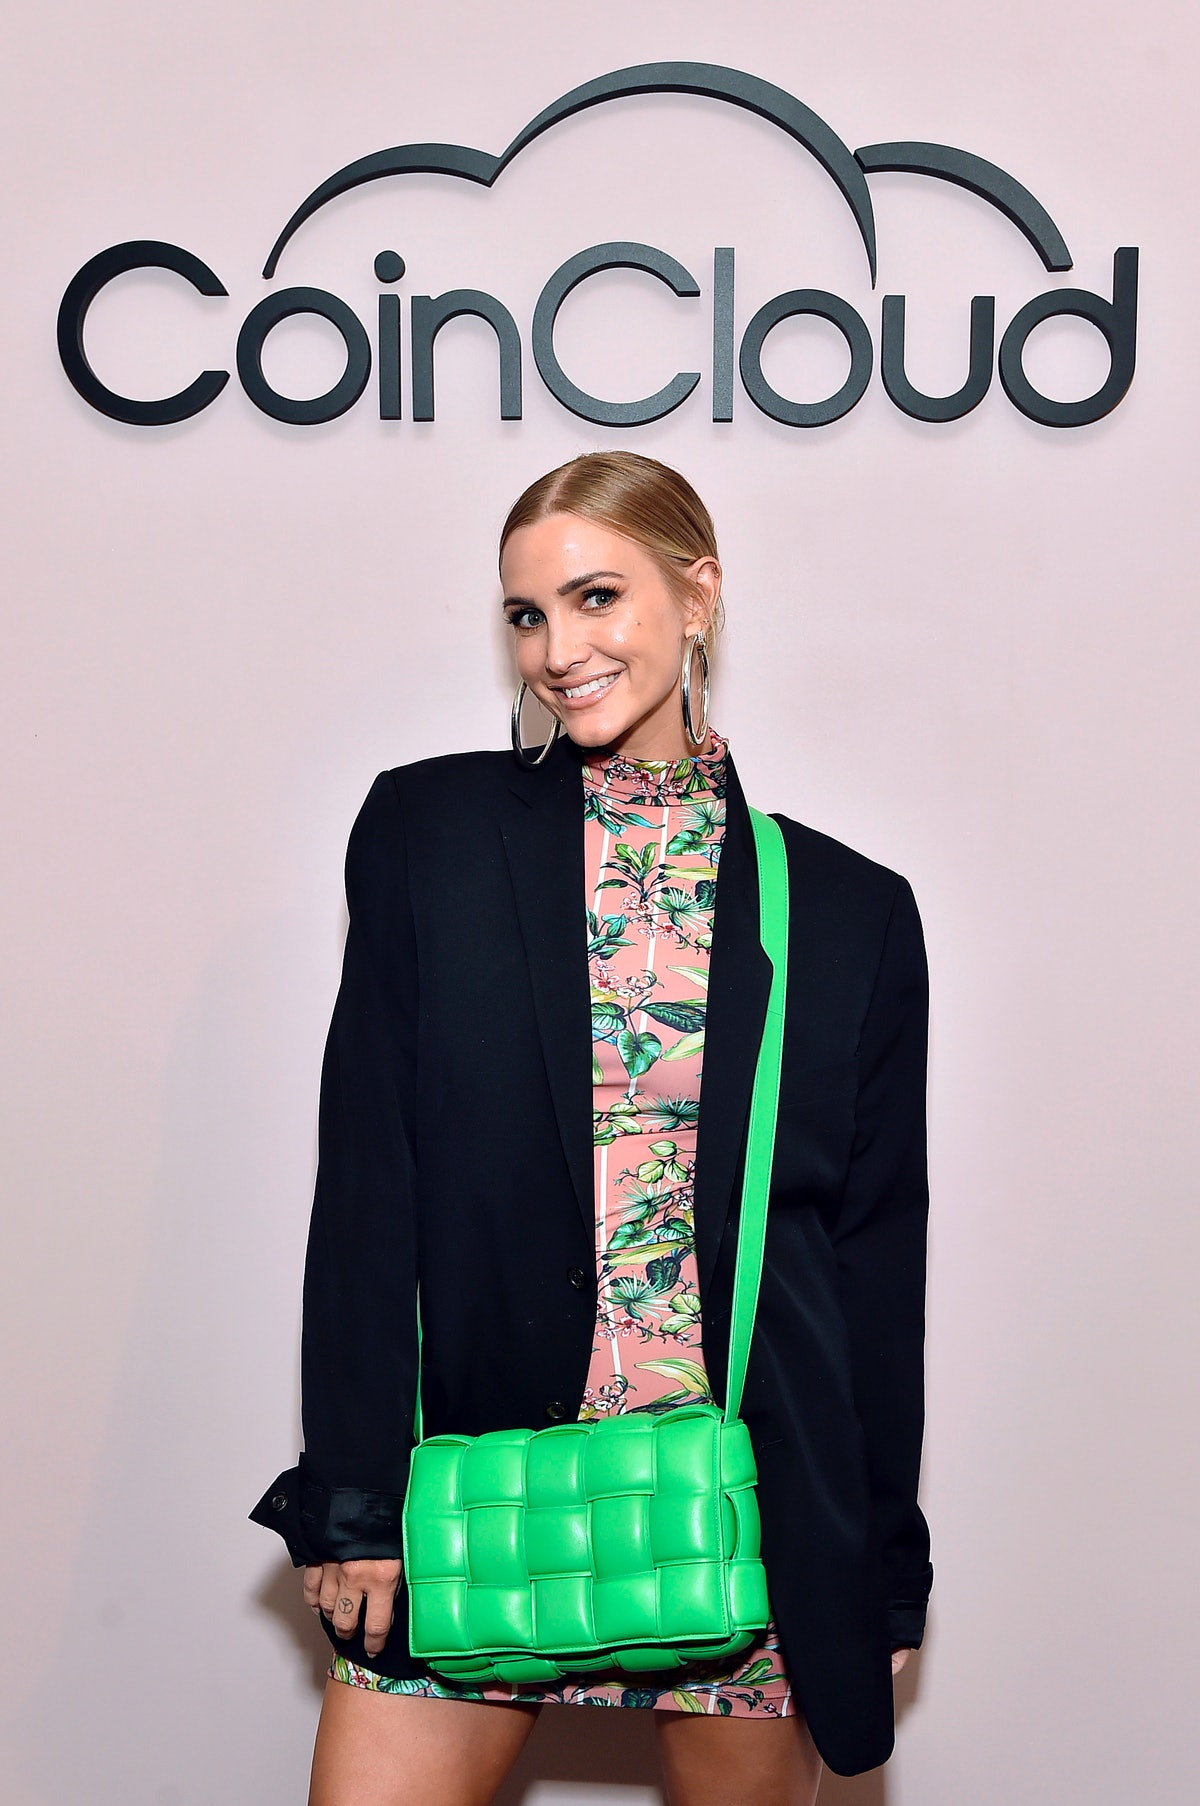 LOS ANGELES, CALIFORNIA - JUNE 15: Ashlee Simpson Ross attends the Coin Cloud Cocktail Party, hosted...